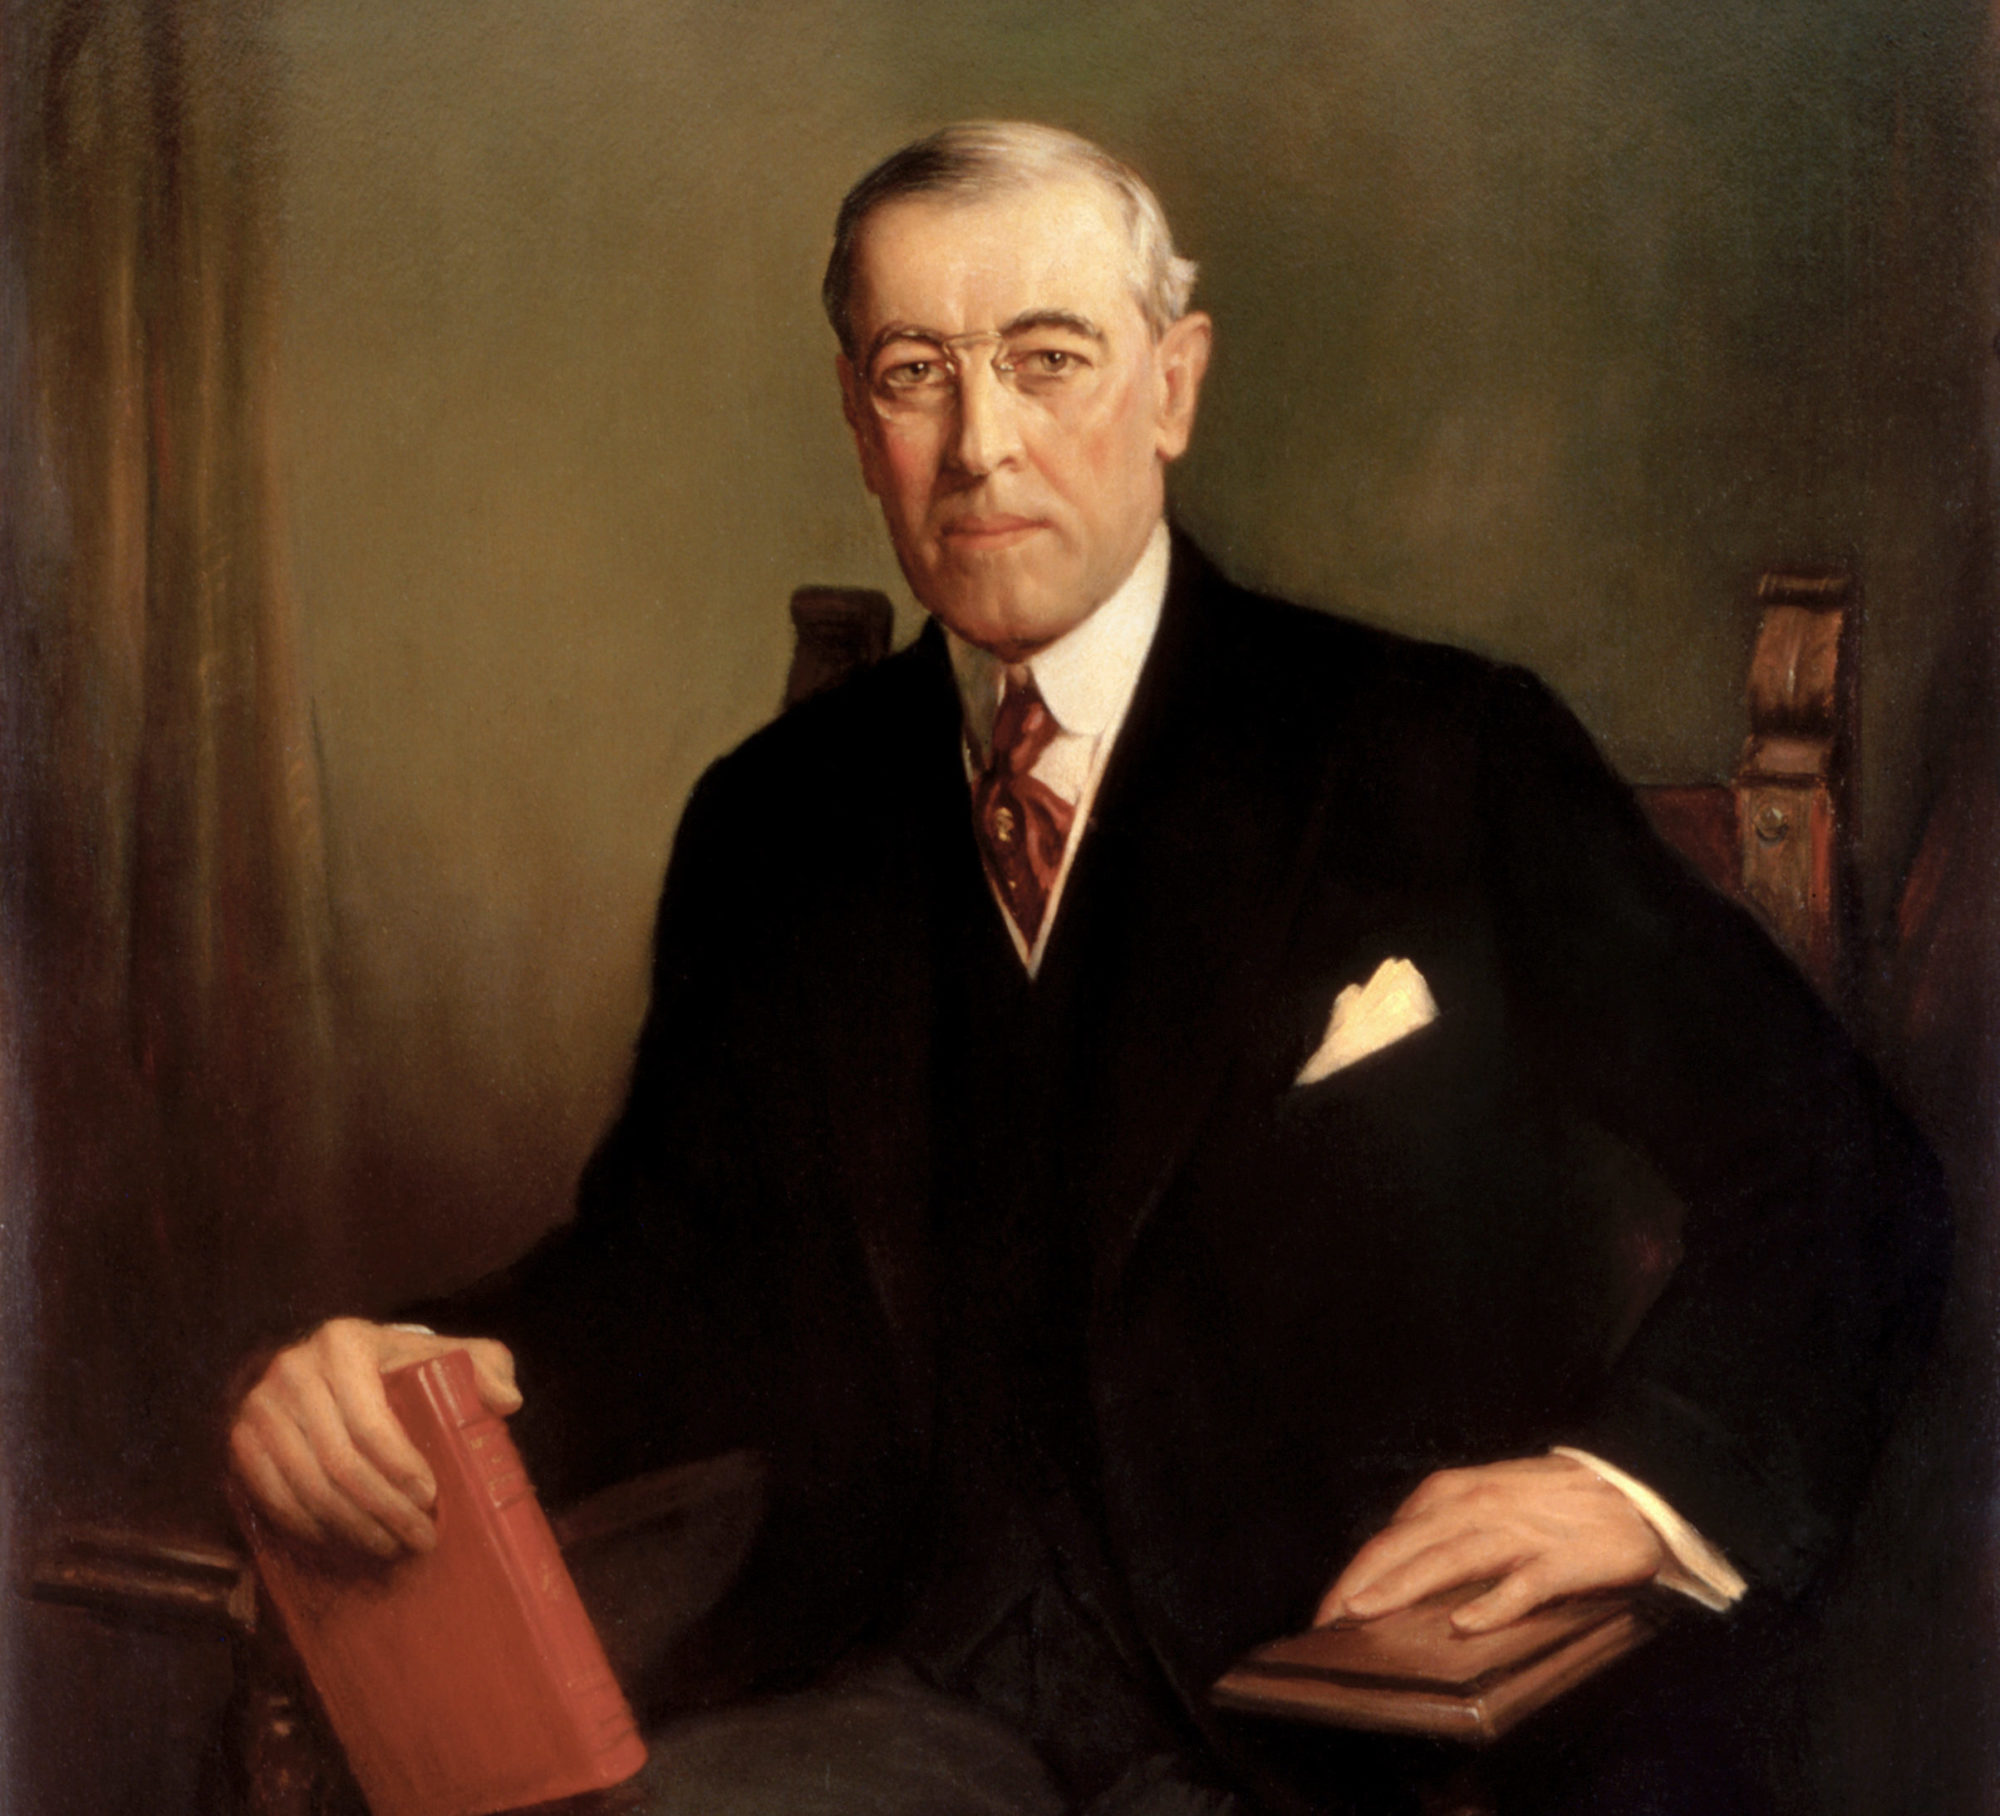 Resurrecting Woodrow Wilson: A Christian Critique of Liberal Internationalism